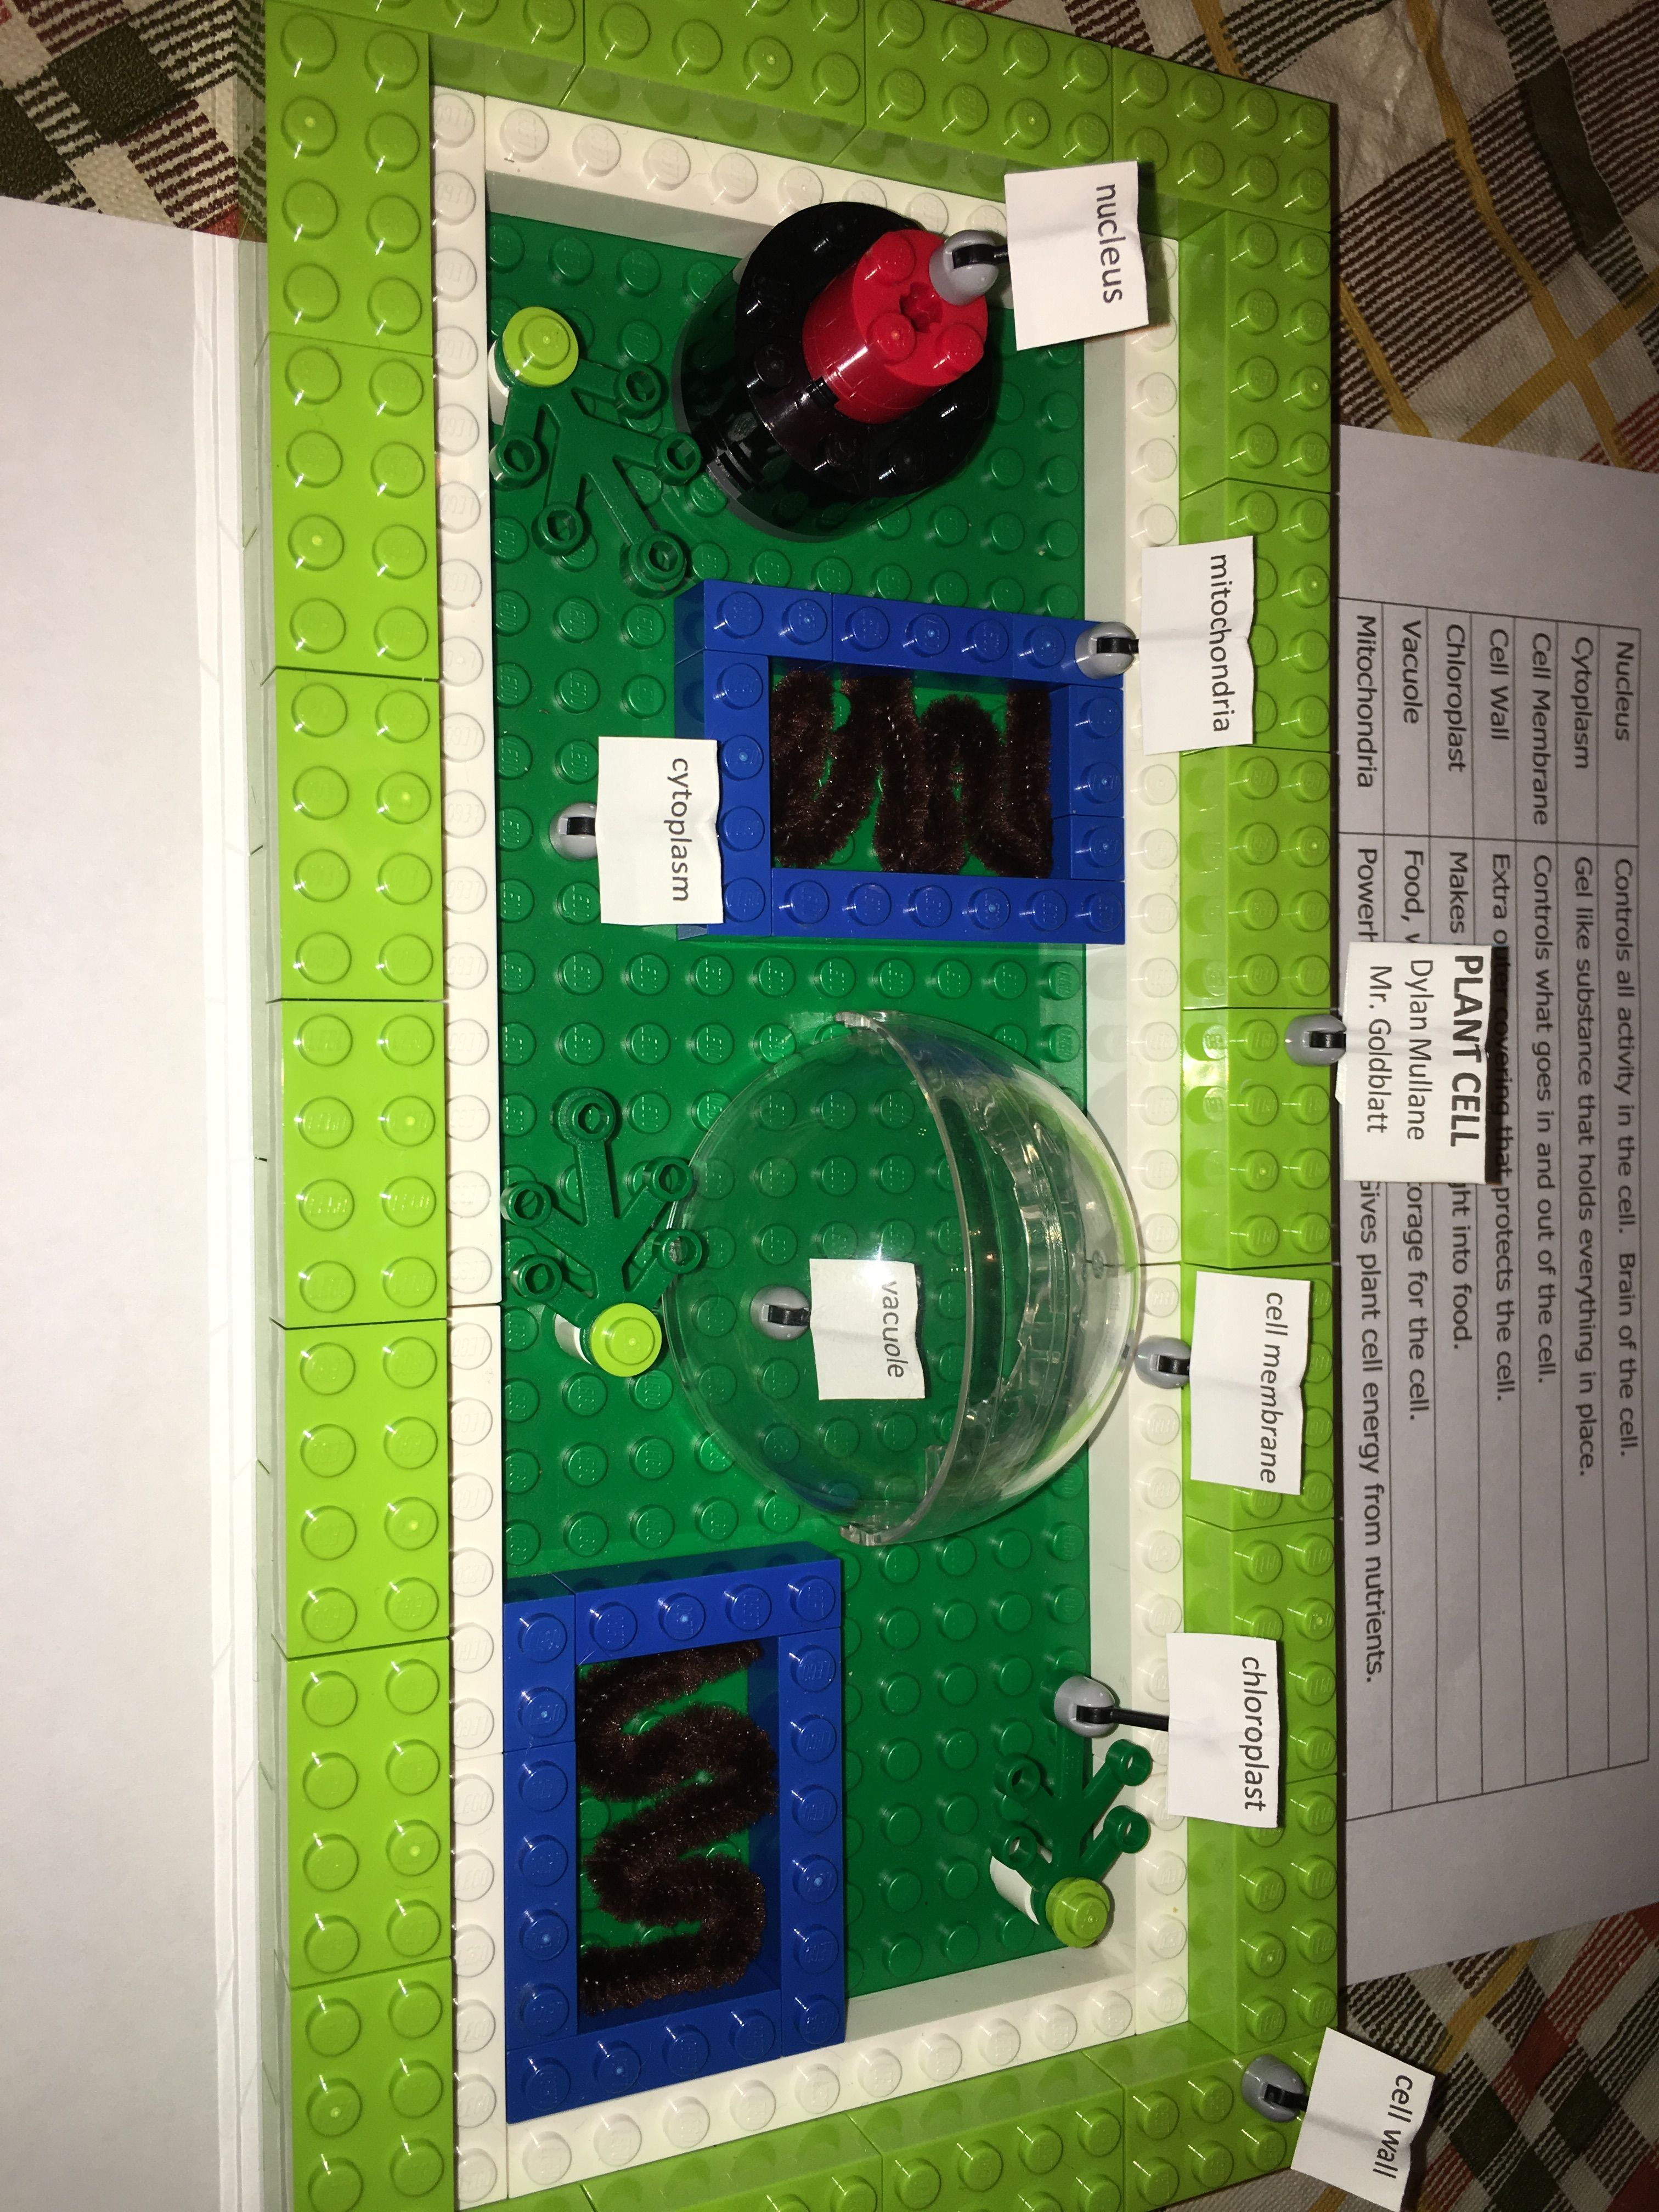 Pin By Tara Ostermann On Big Project Ideas Cell Model Plant 3d Diagram Not Labeled Teaching Parts Of A